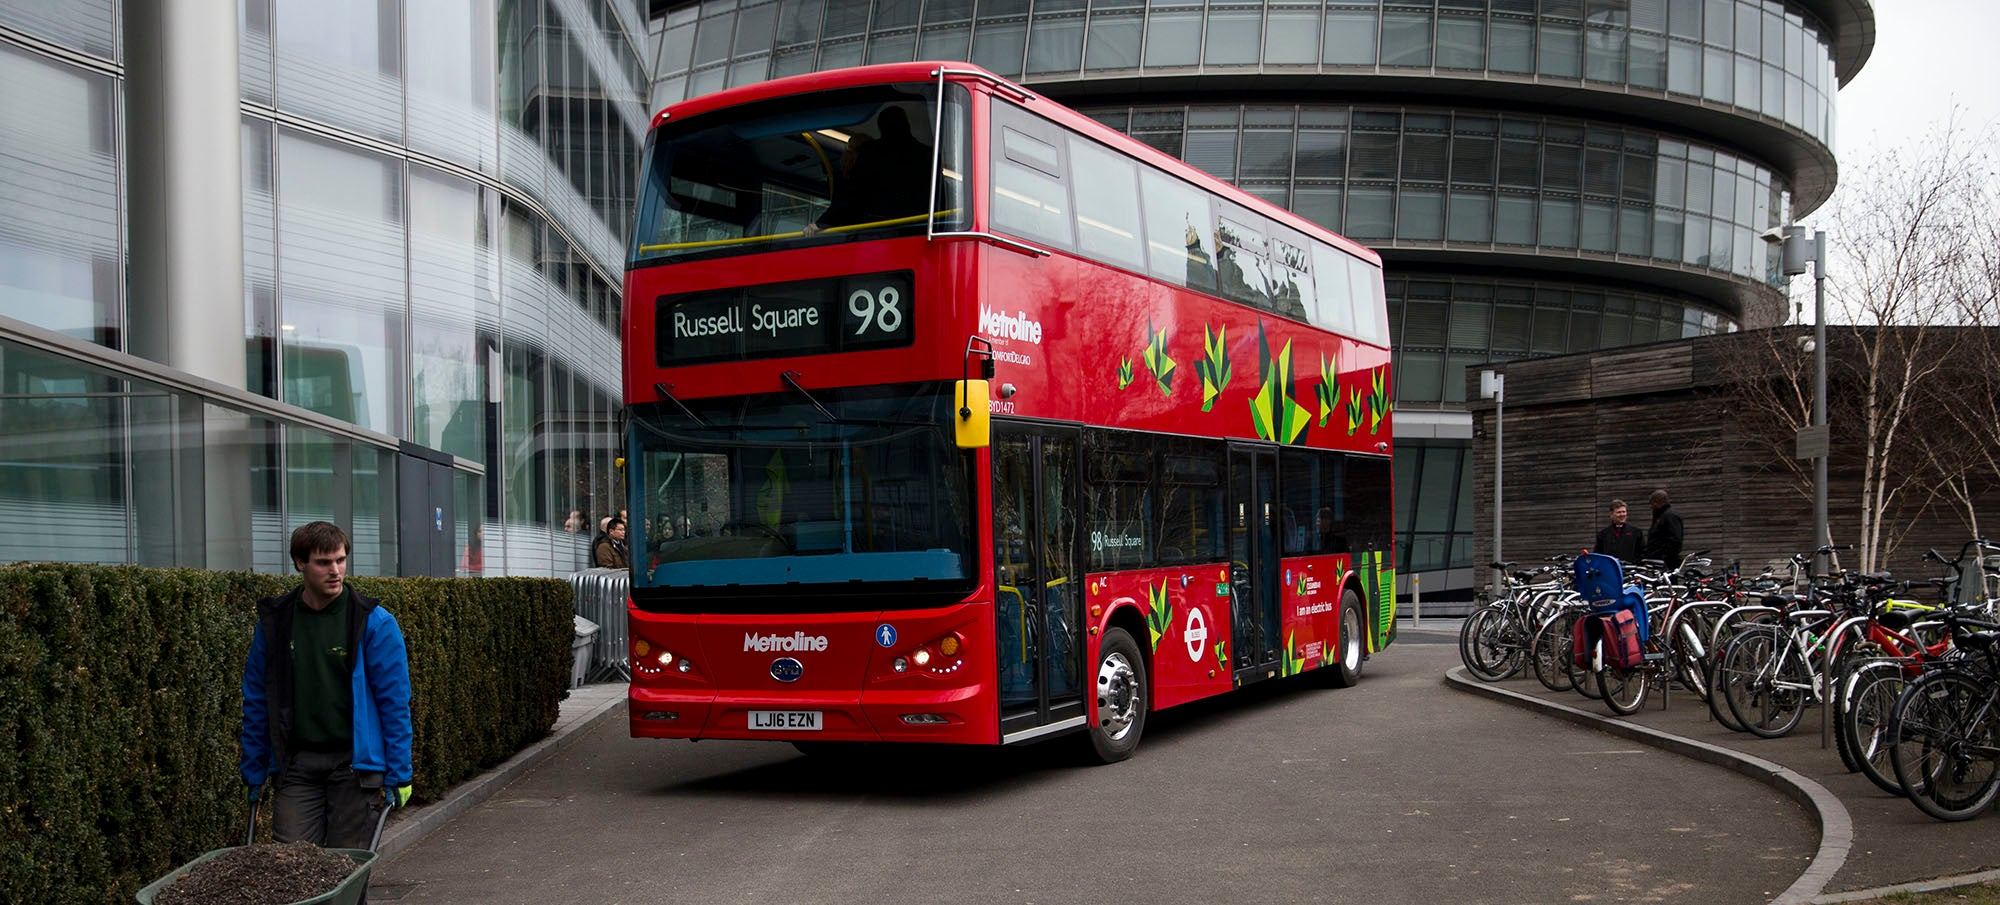 World's First All-Electric Double-Deck Buses Hit London's Streets